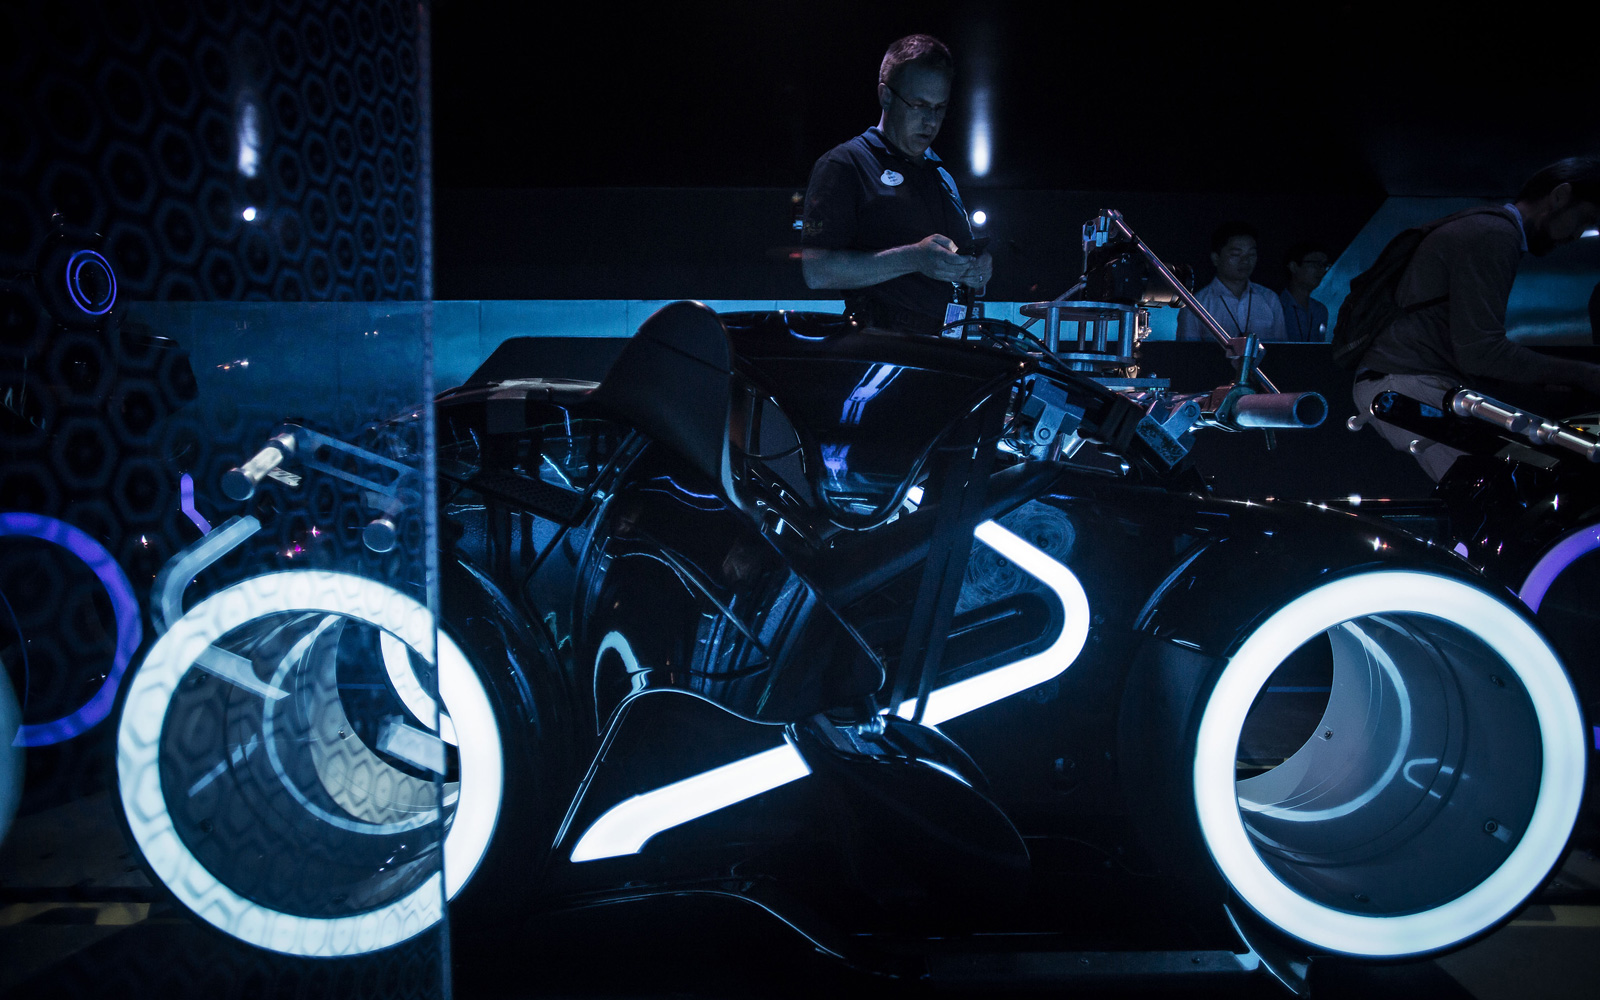 The Tron roller coaster is coming to Disney World.